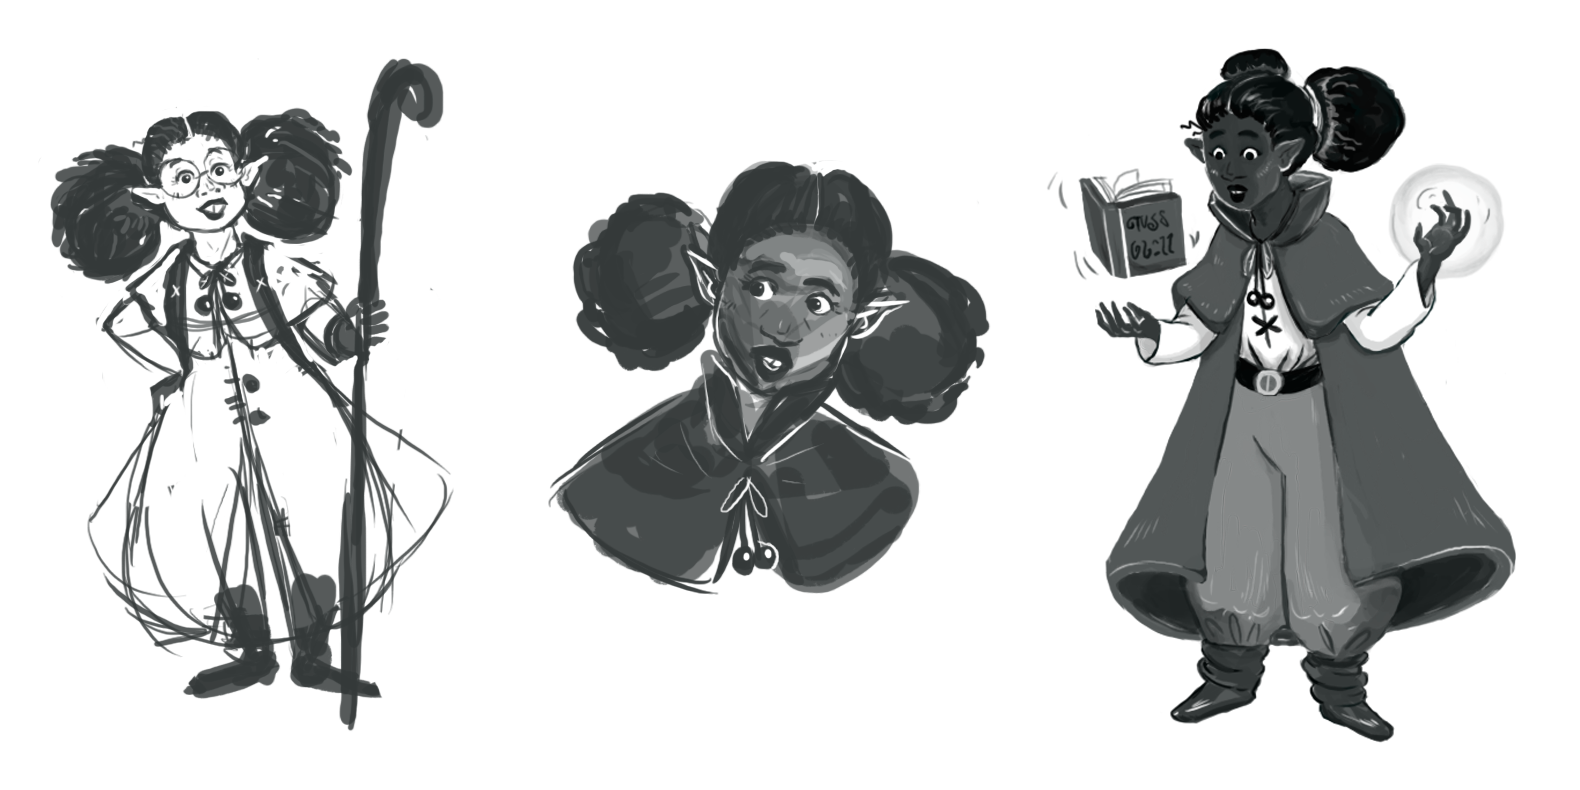 mildred character design.png